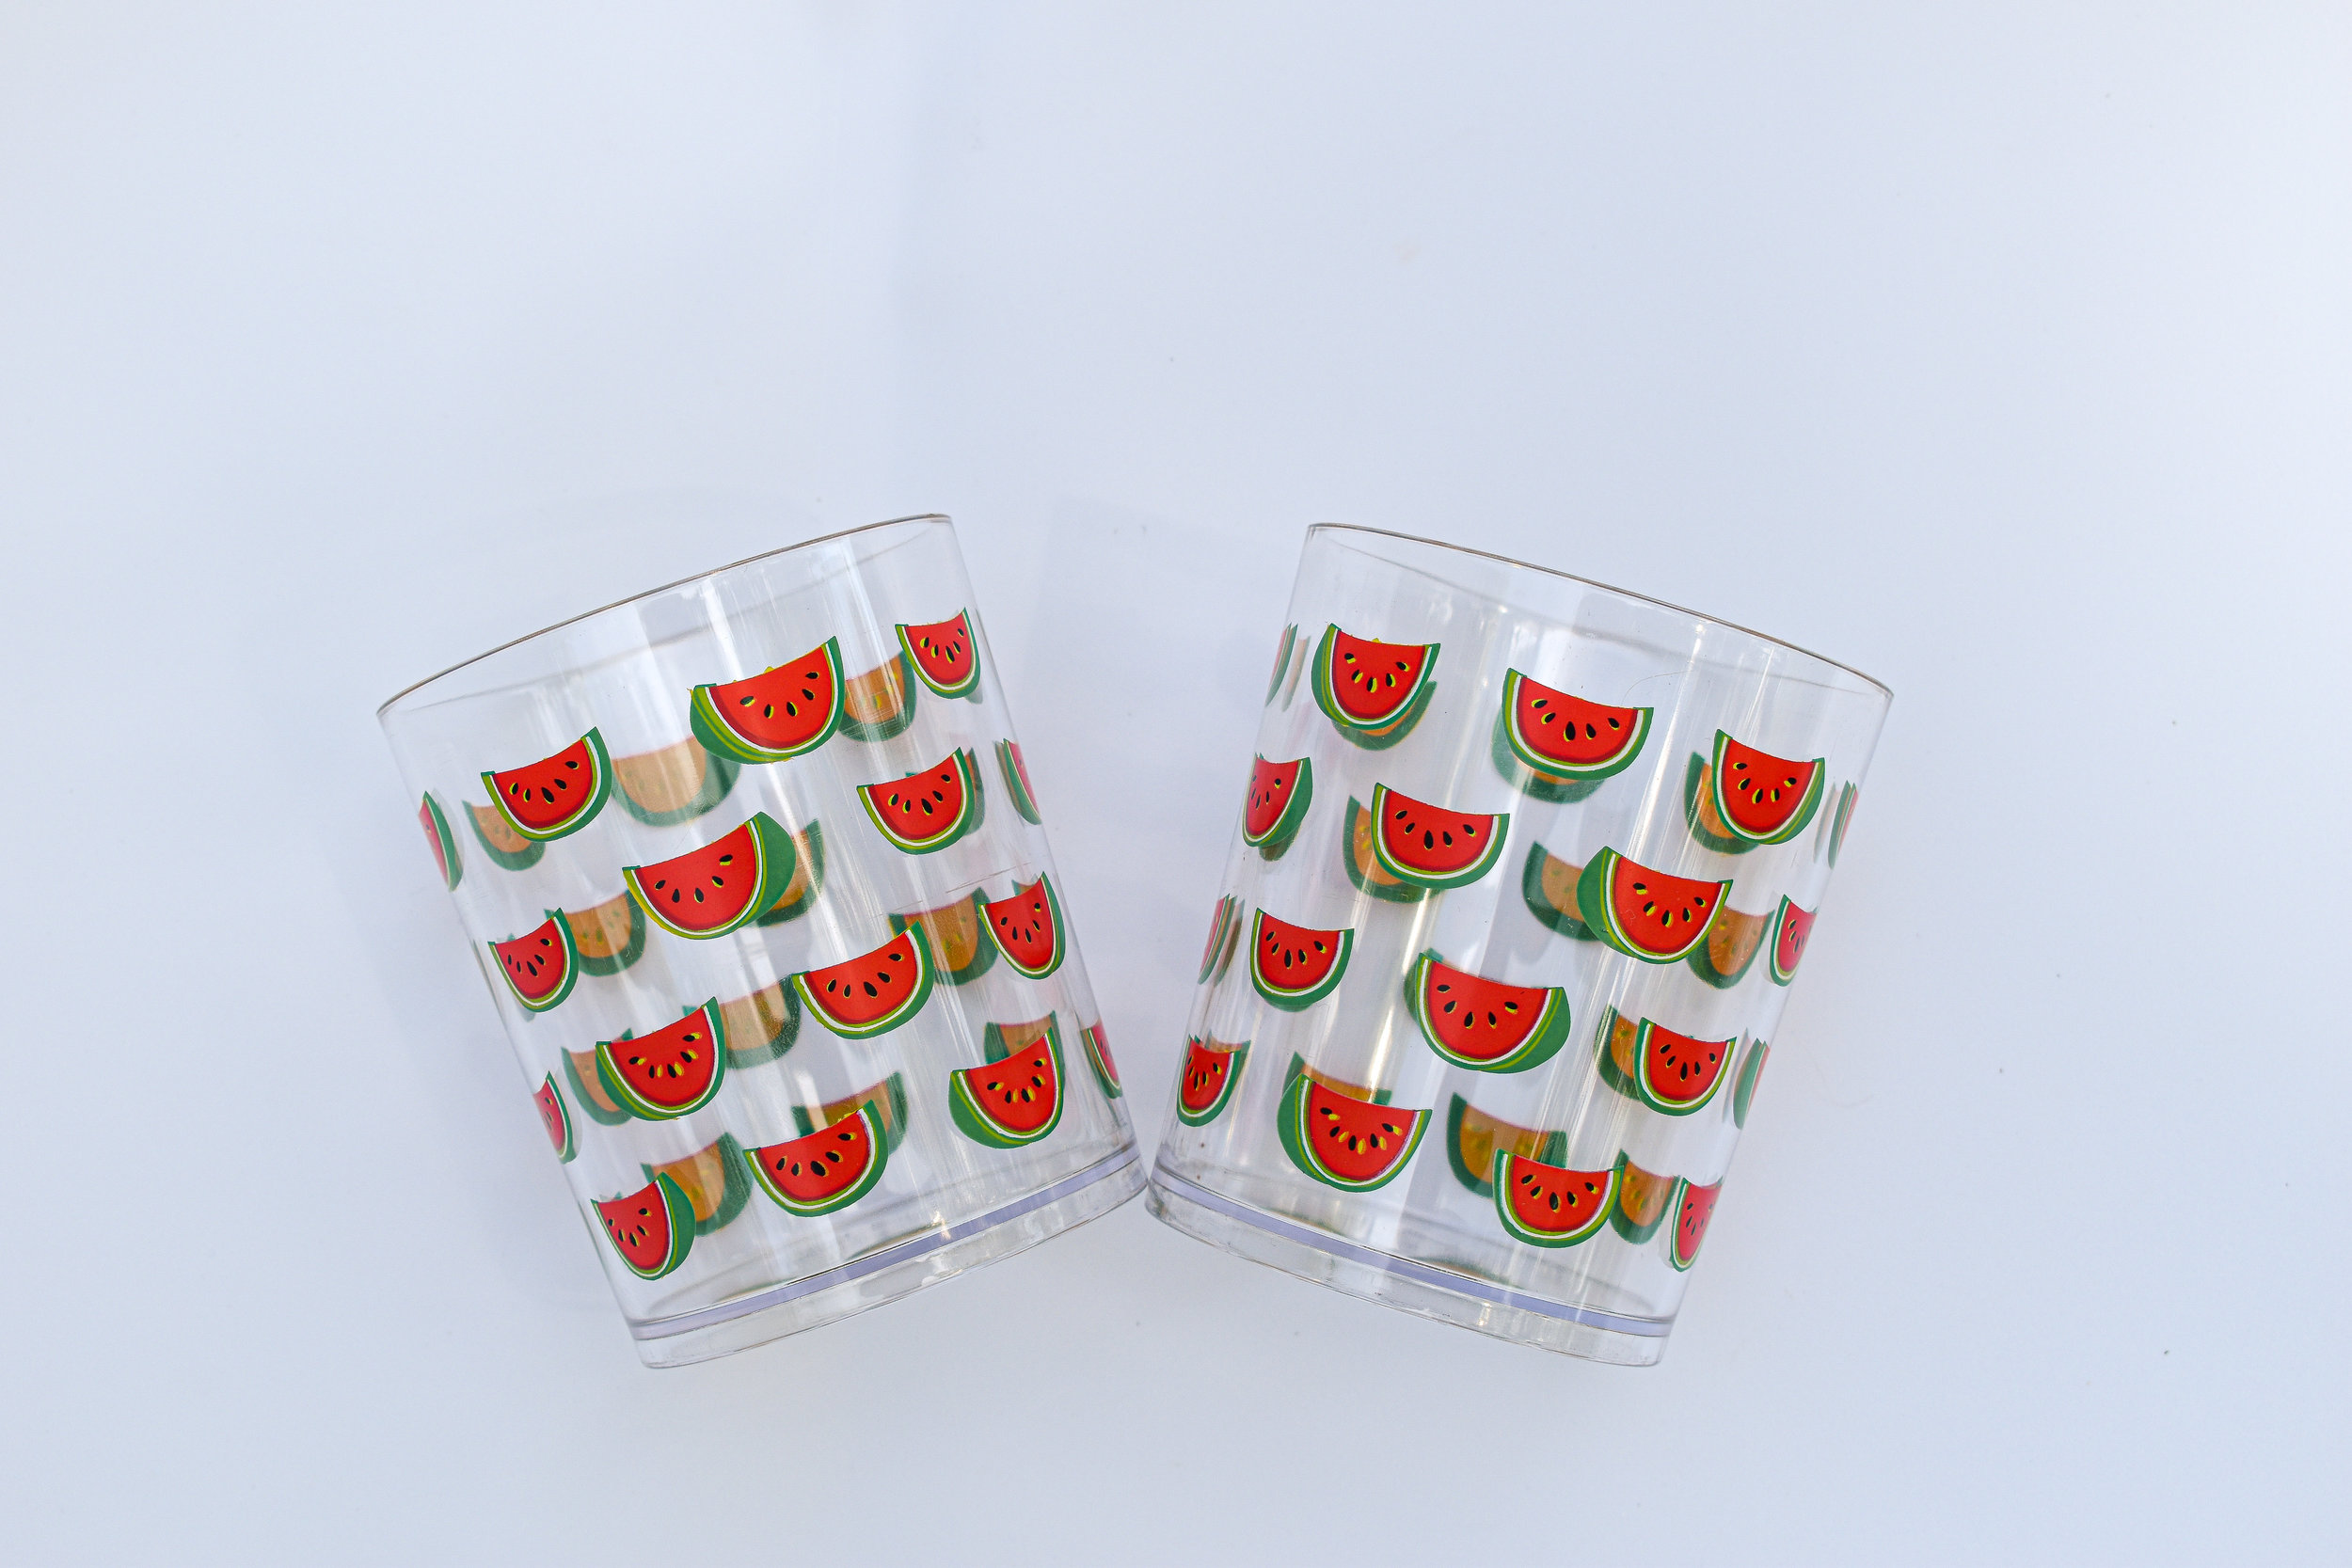 And who's gonna say no to plastic, dishwasher safe, cute watermelon art, cocktail glasses? Have all the drinks you want in these. If you, and they, fall in the pool, they won't break!